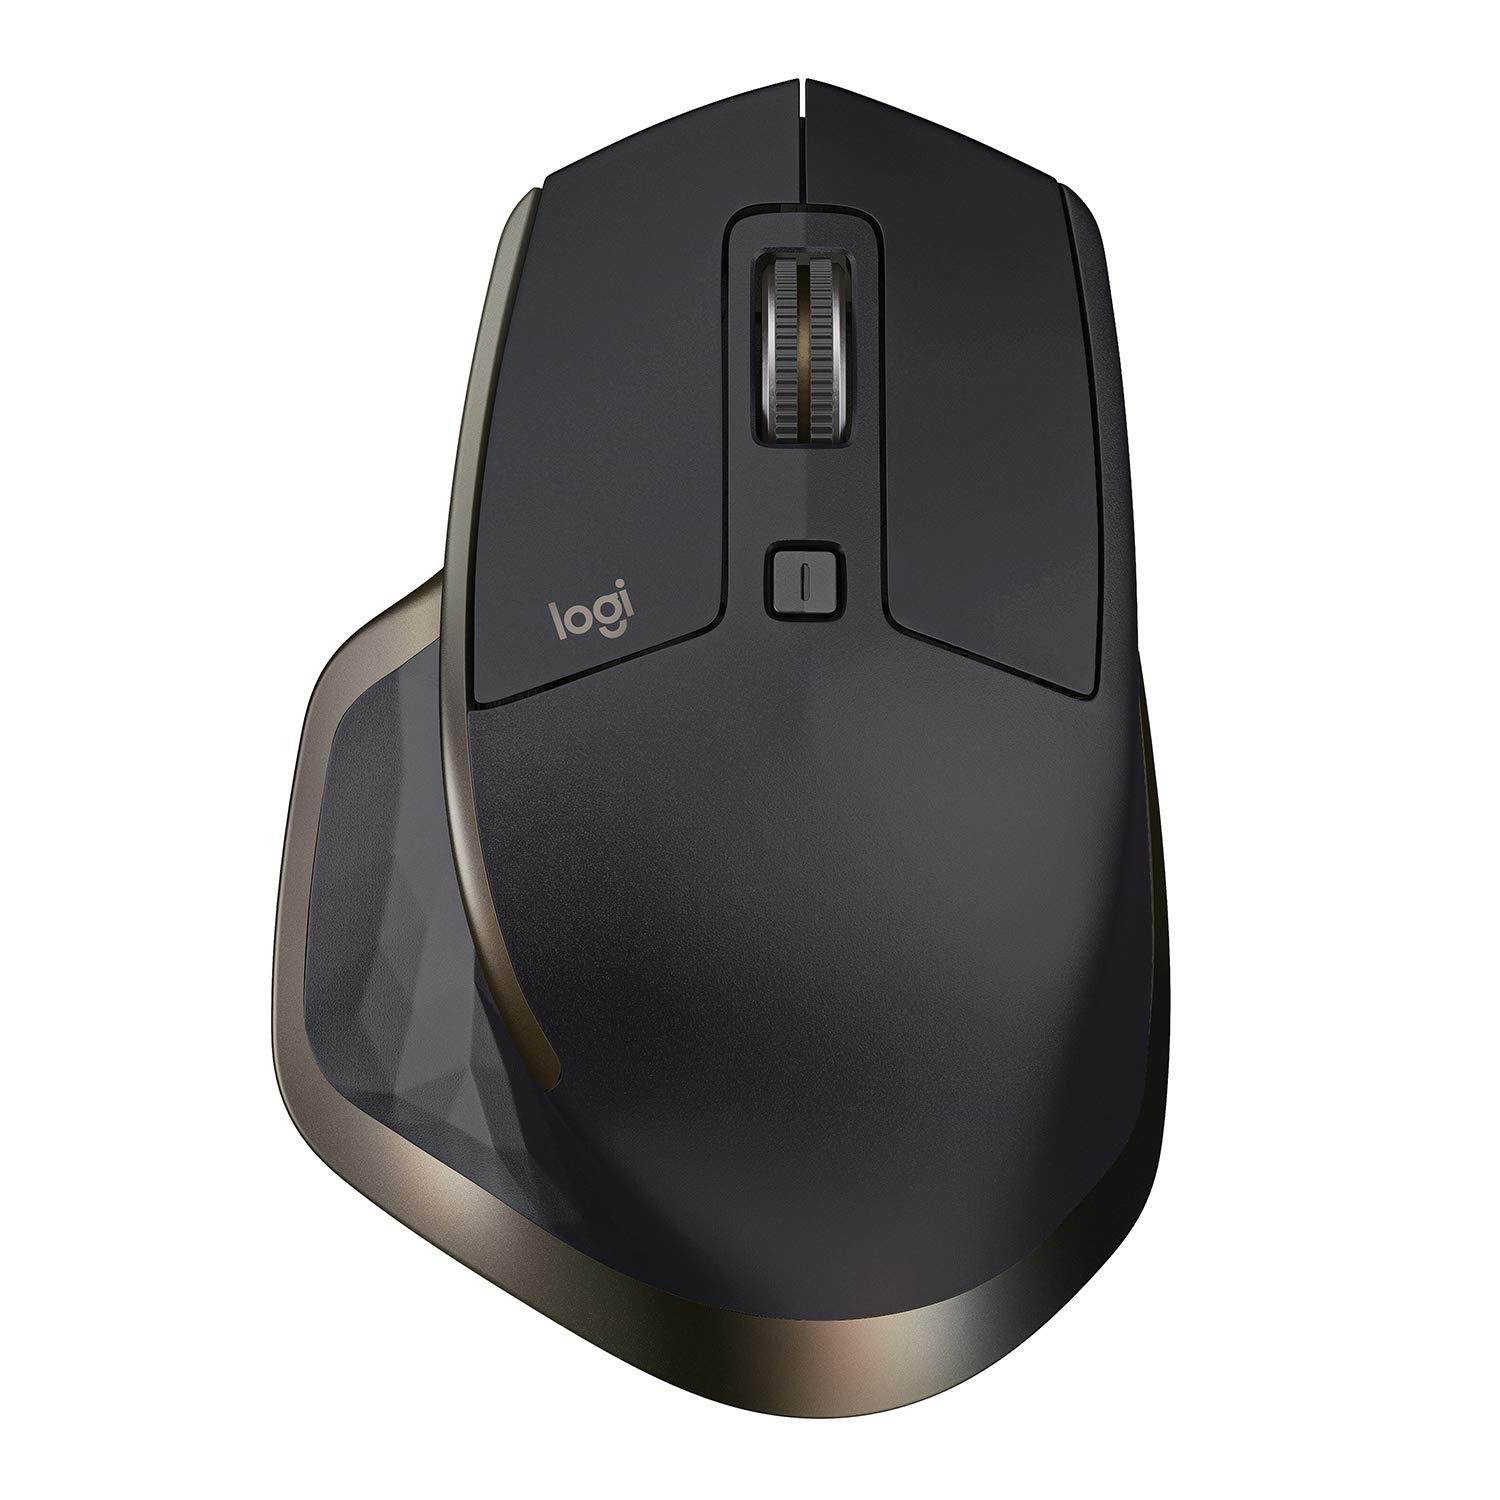 22bdf3bf69a Amazon.com: Logitech MX Master Wireless Mouse – High-precision Sensor,  Speed-adaptive Scroll Wheel, Thumb Scroll Wheel, Easy-Switch up to 3  Devices: ...